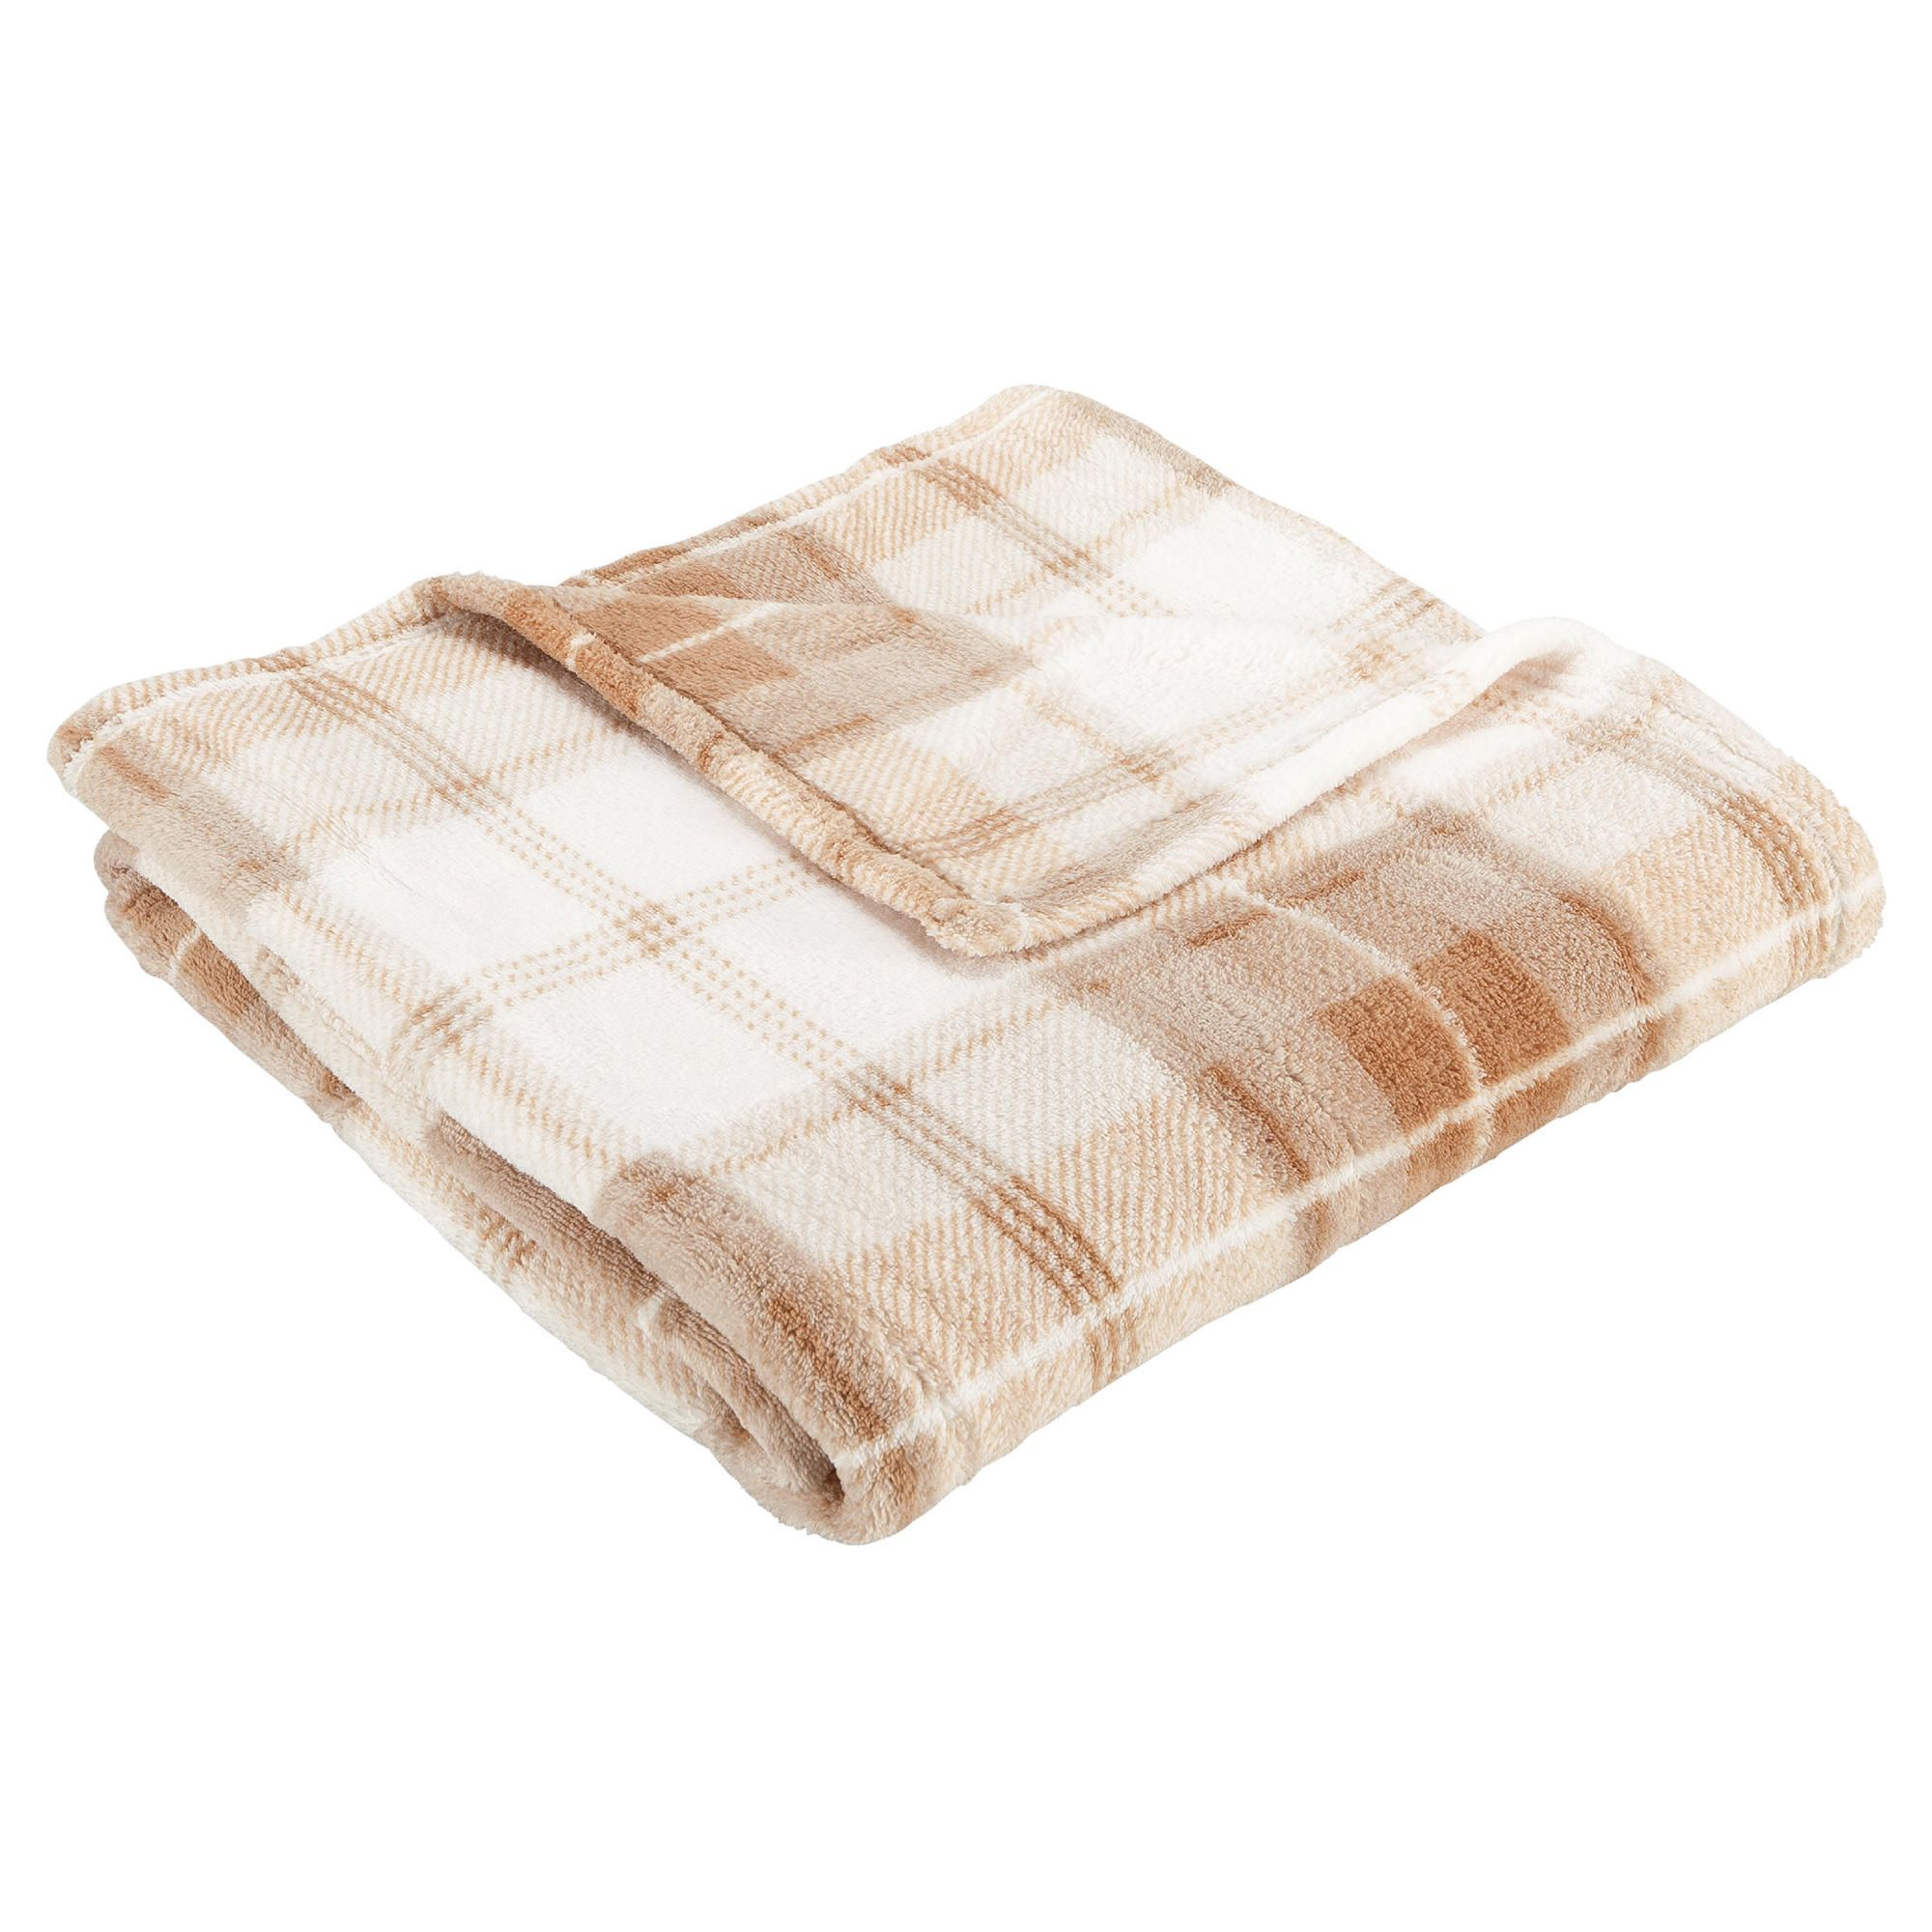 Home And Garden gt Bedroom Tesco Supersoft Throw Check